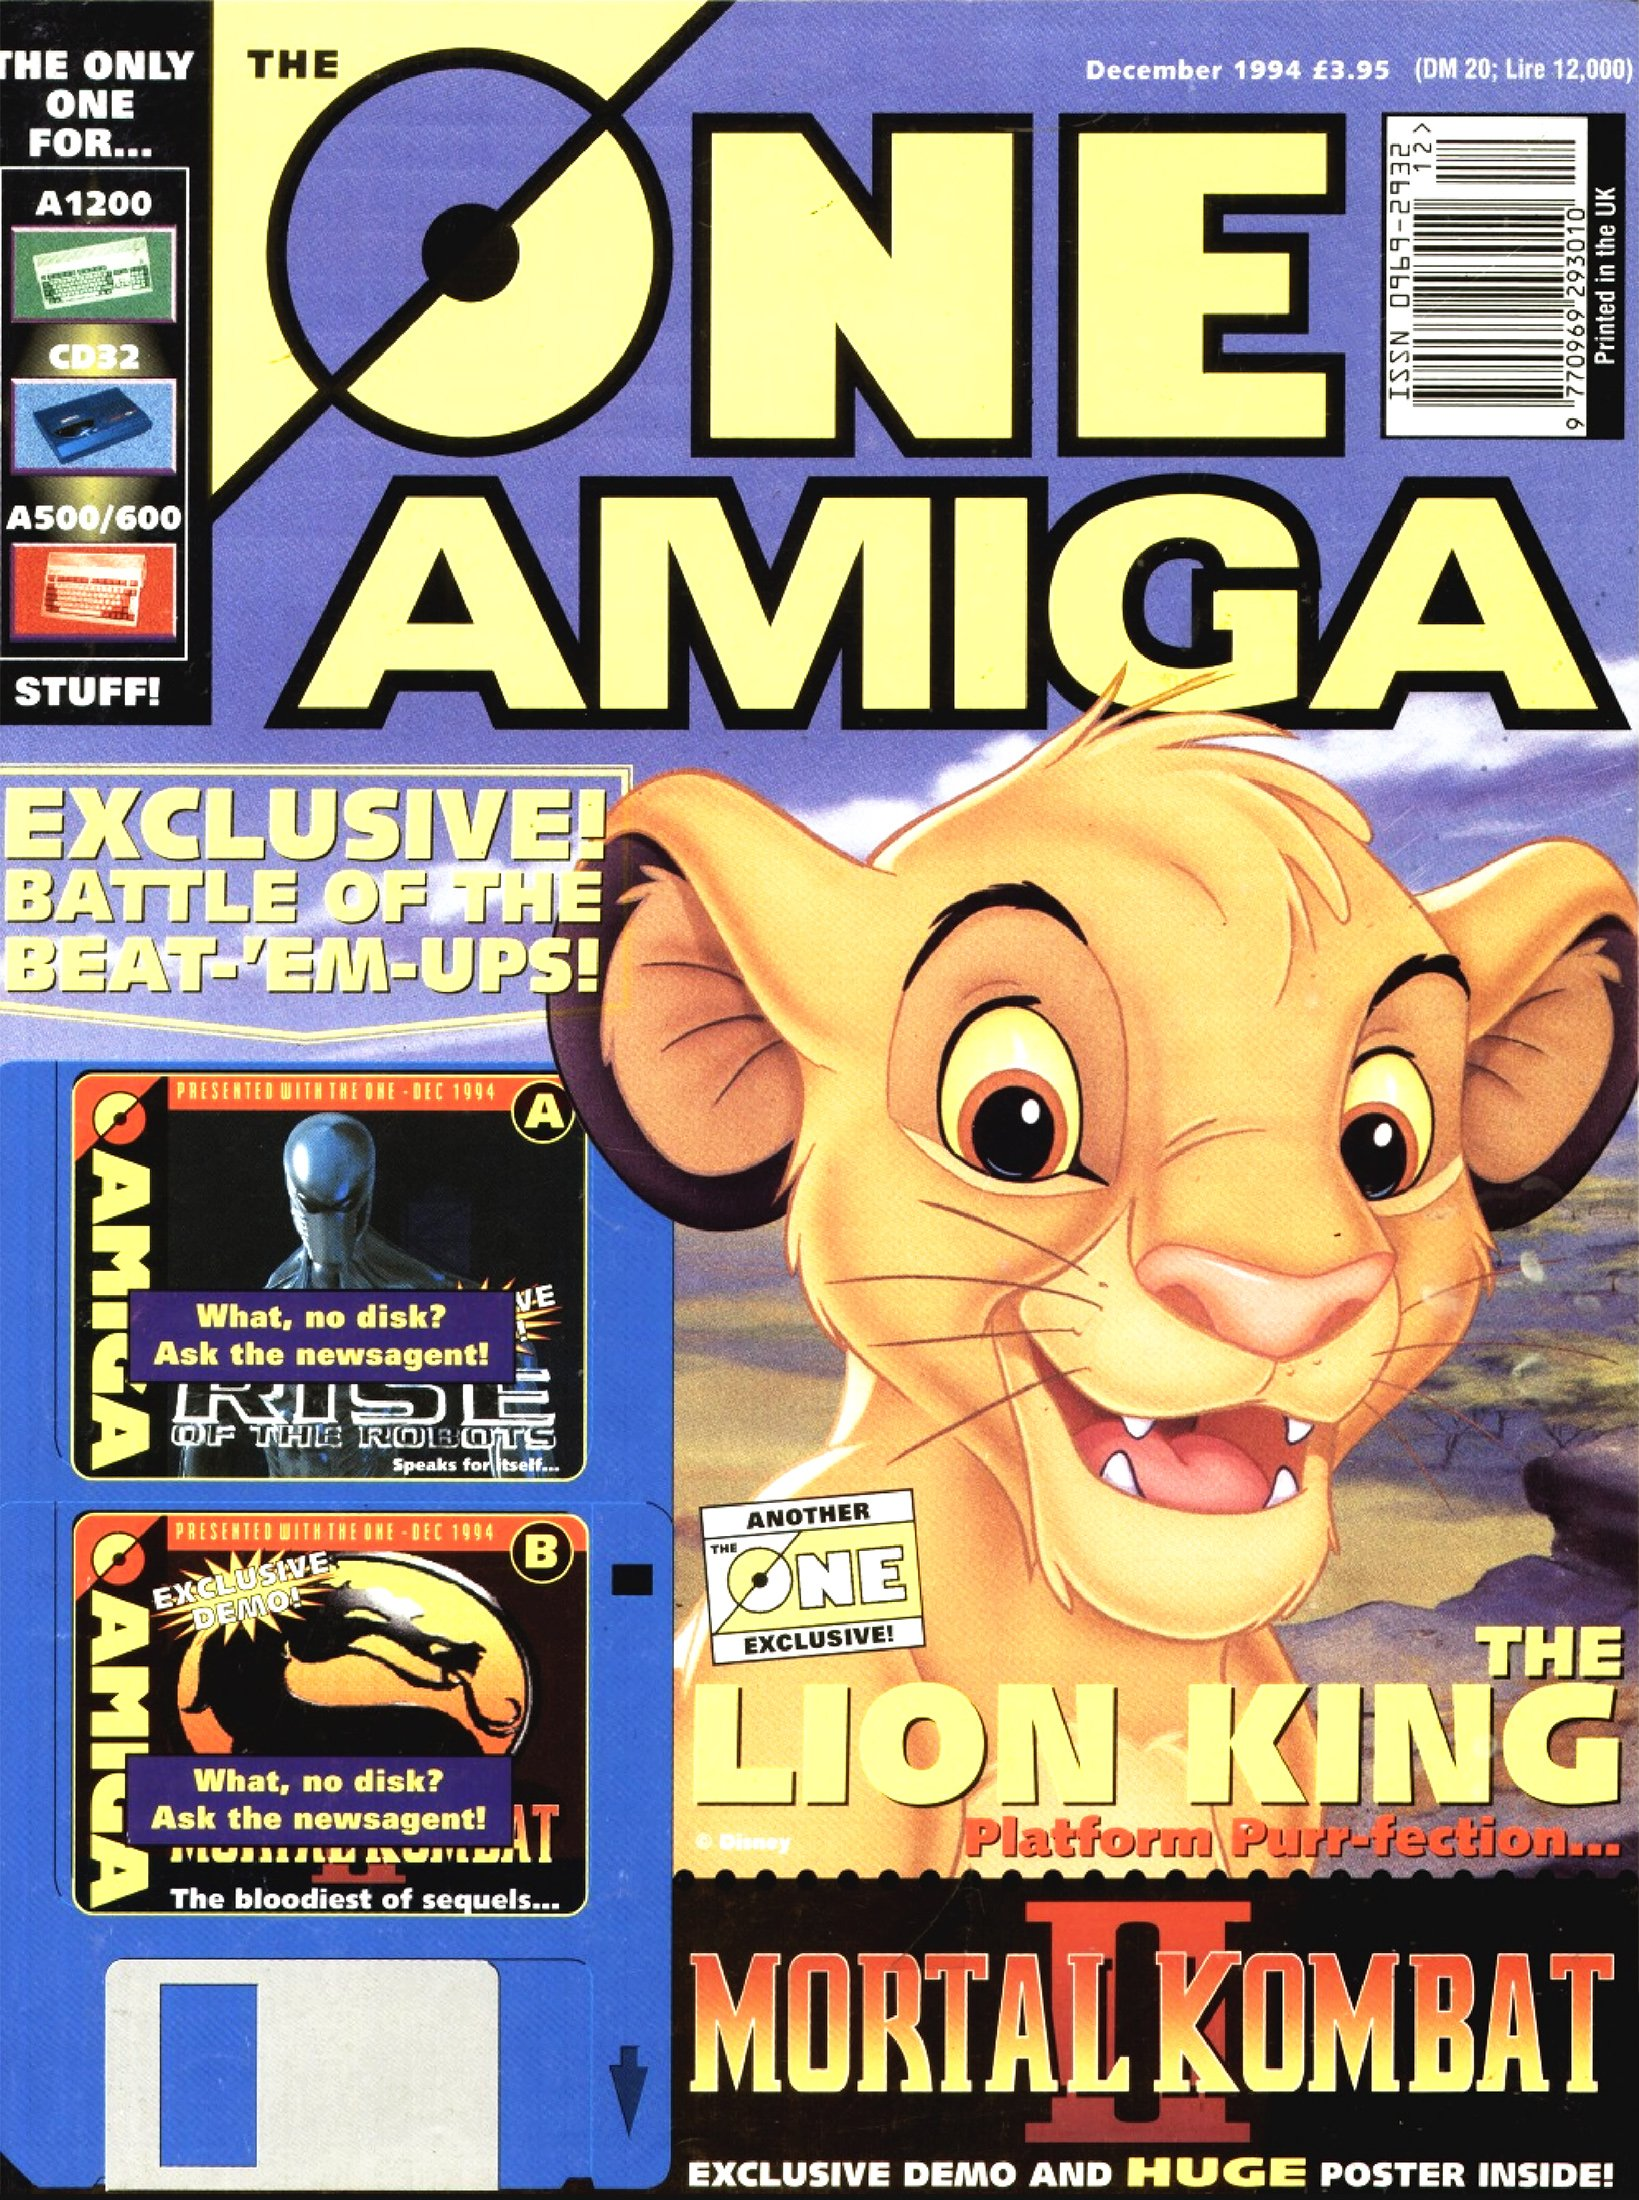 The One 075 (December 1994)